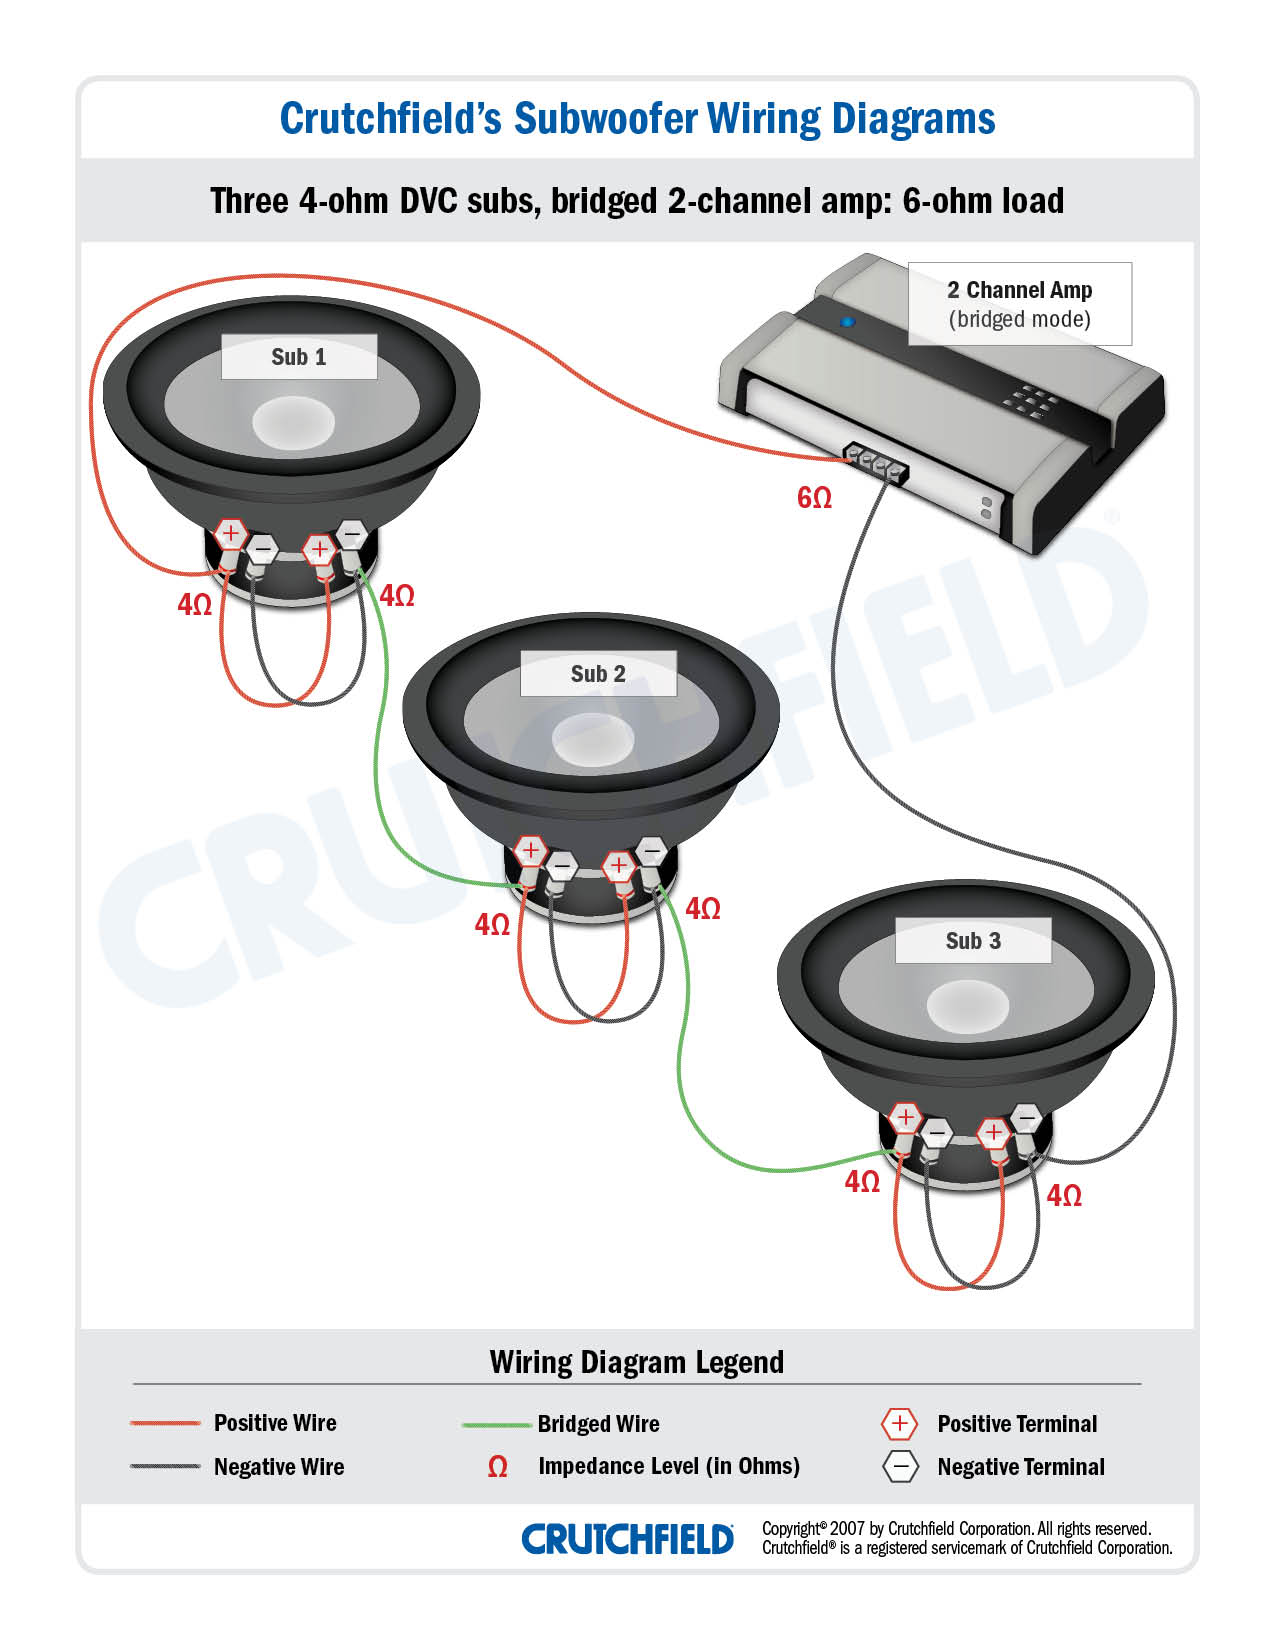 3 DVC 4 ohm 2 ch subwoofer wiring diagrams amp wiring diagram at cita.asia